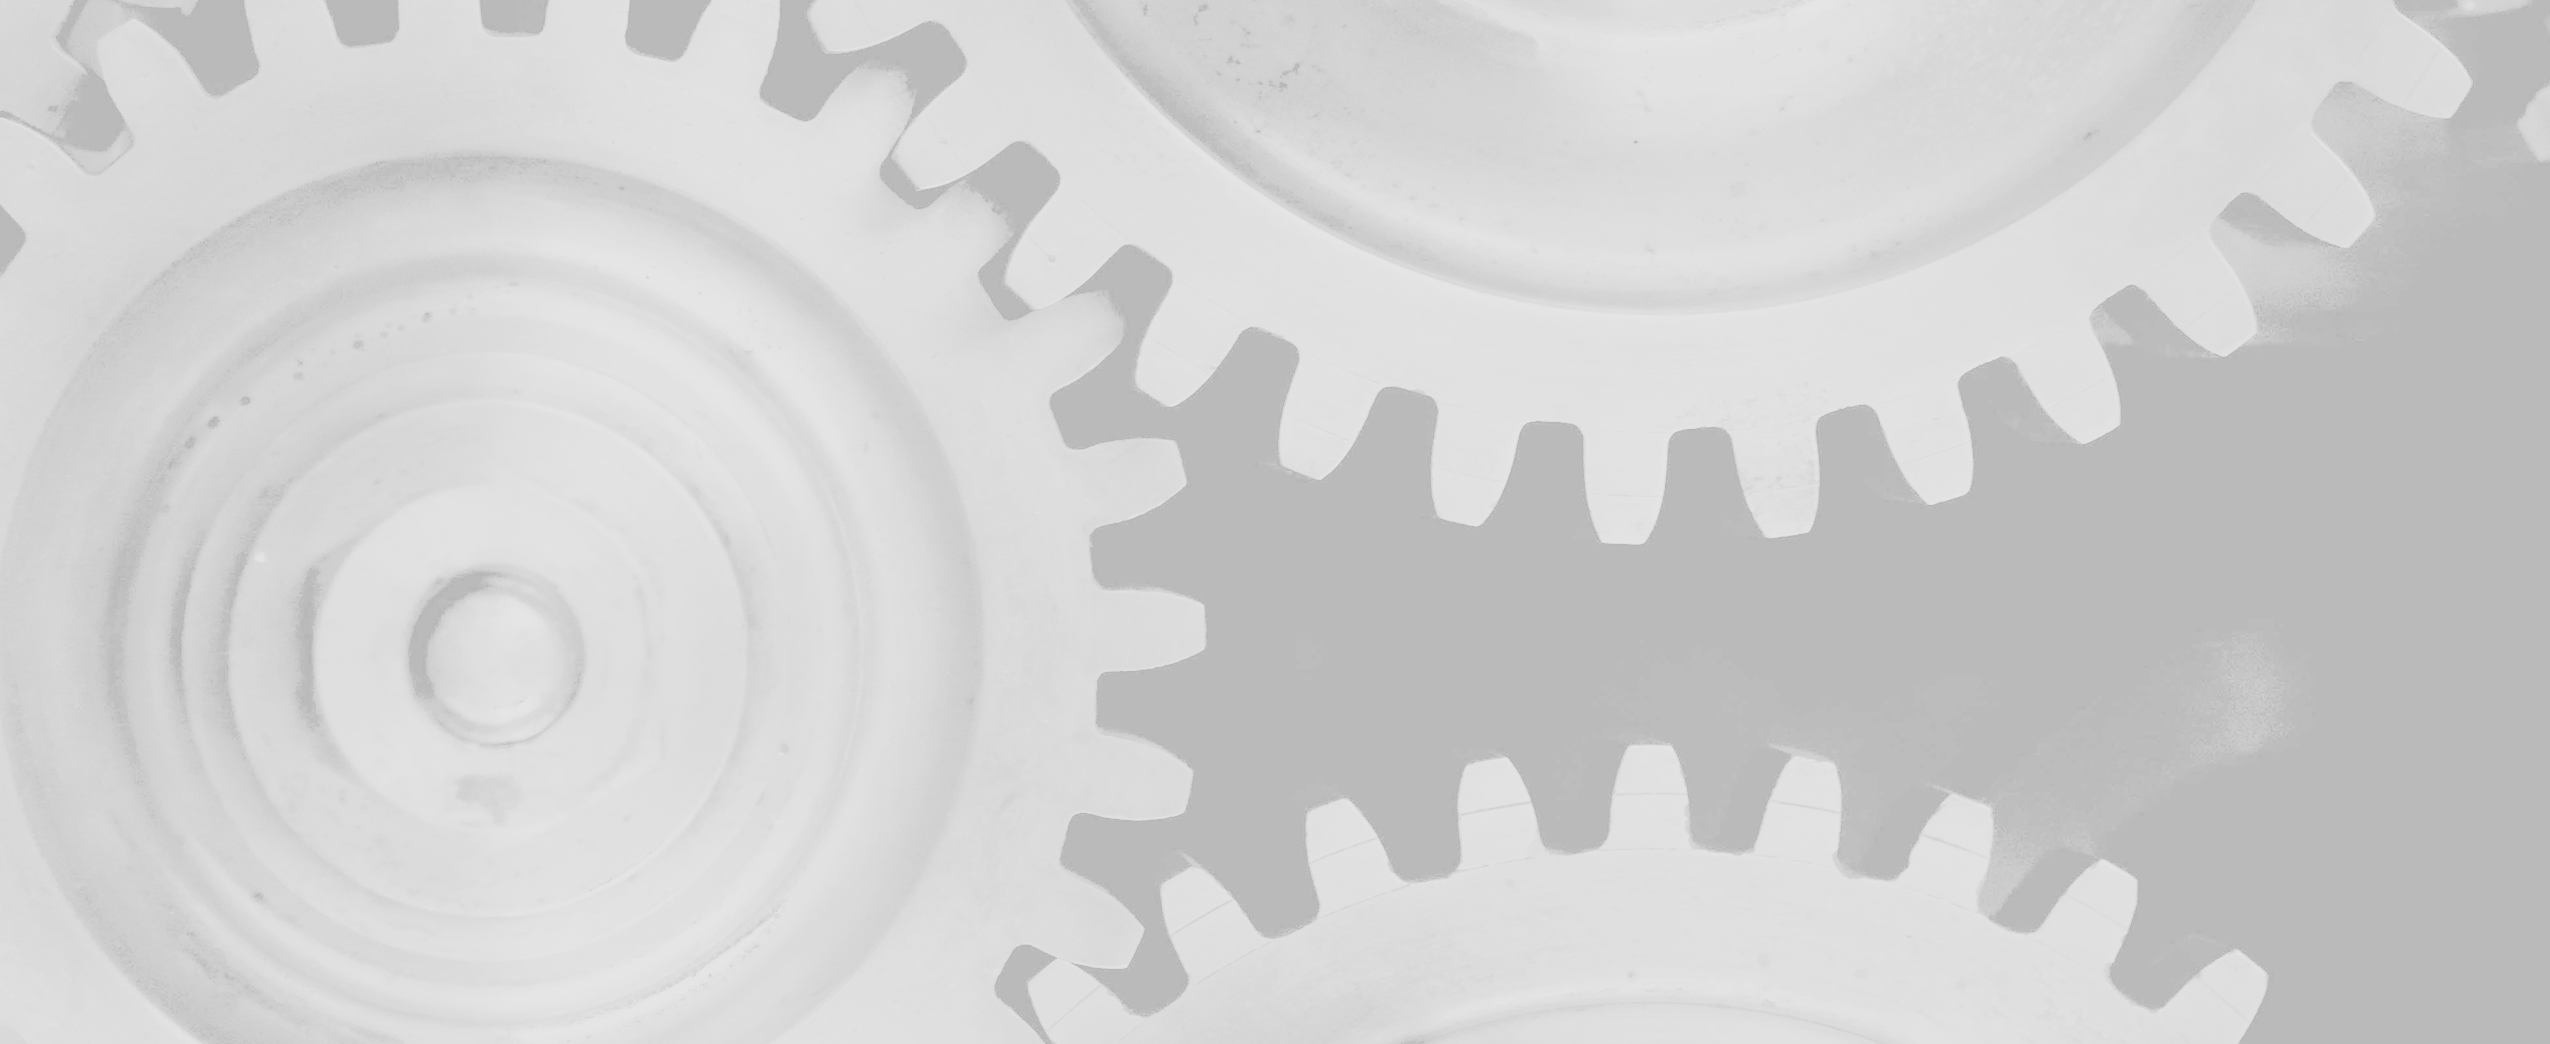 gear-white-background landscape